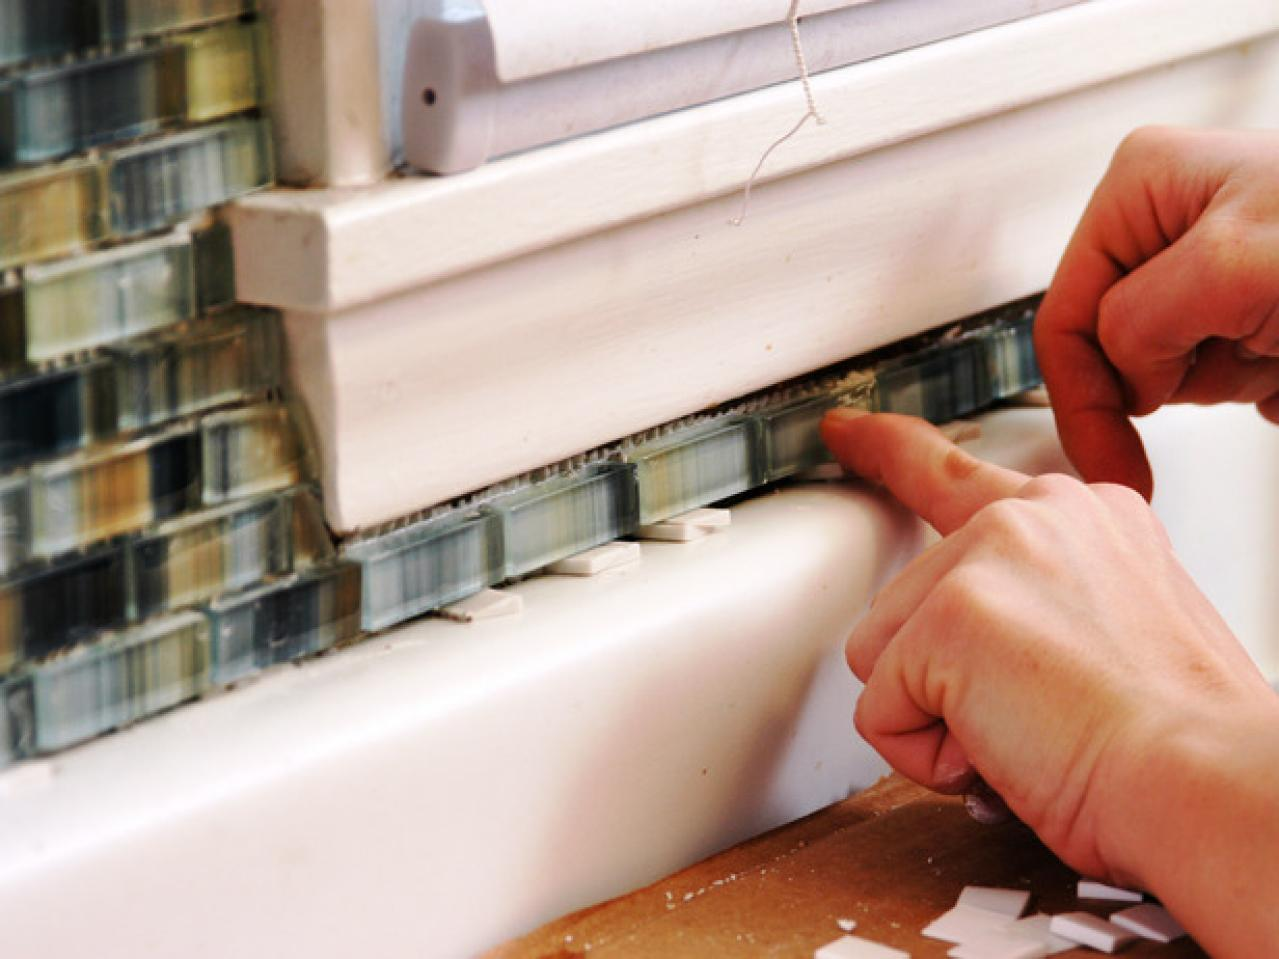 How to Install a Tile Backsplash | how-tos | DIY